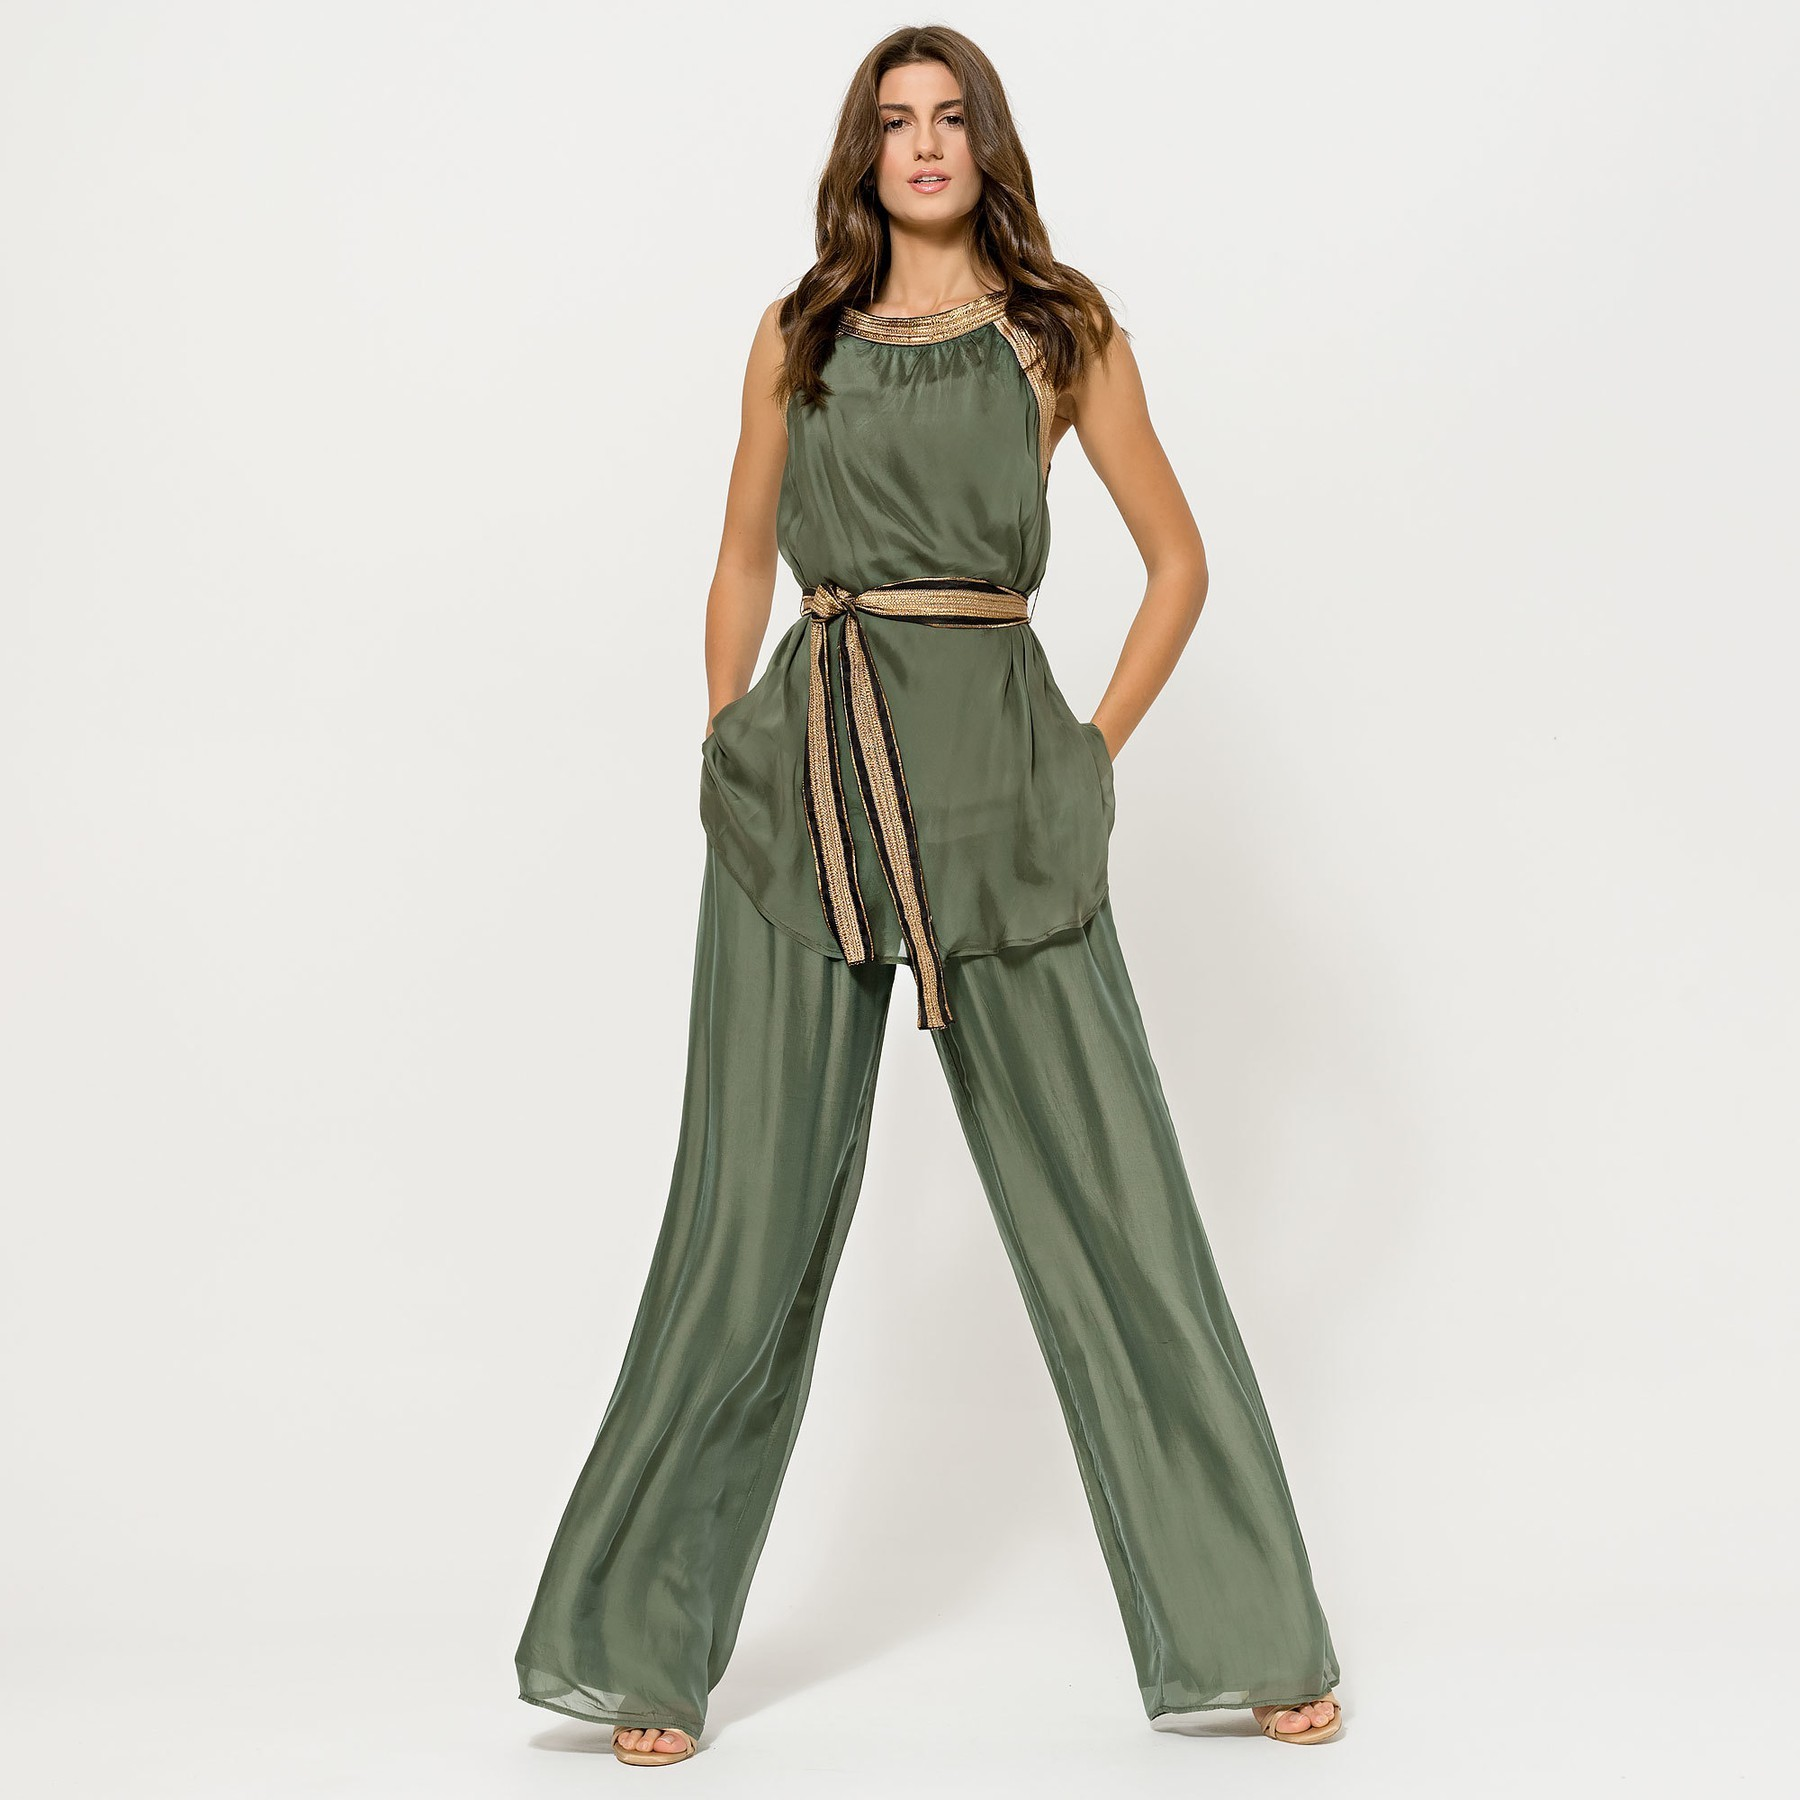 Khaki Green top with Gold Straps and Belt ACCTOPGREN